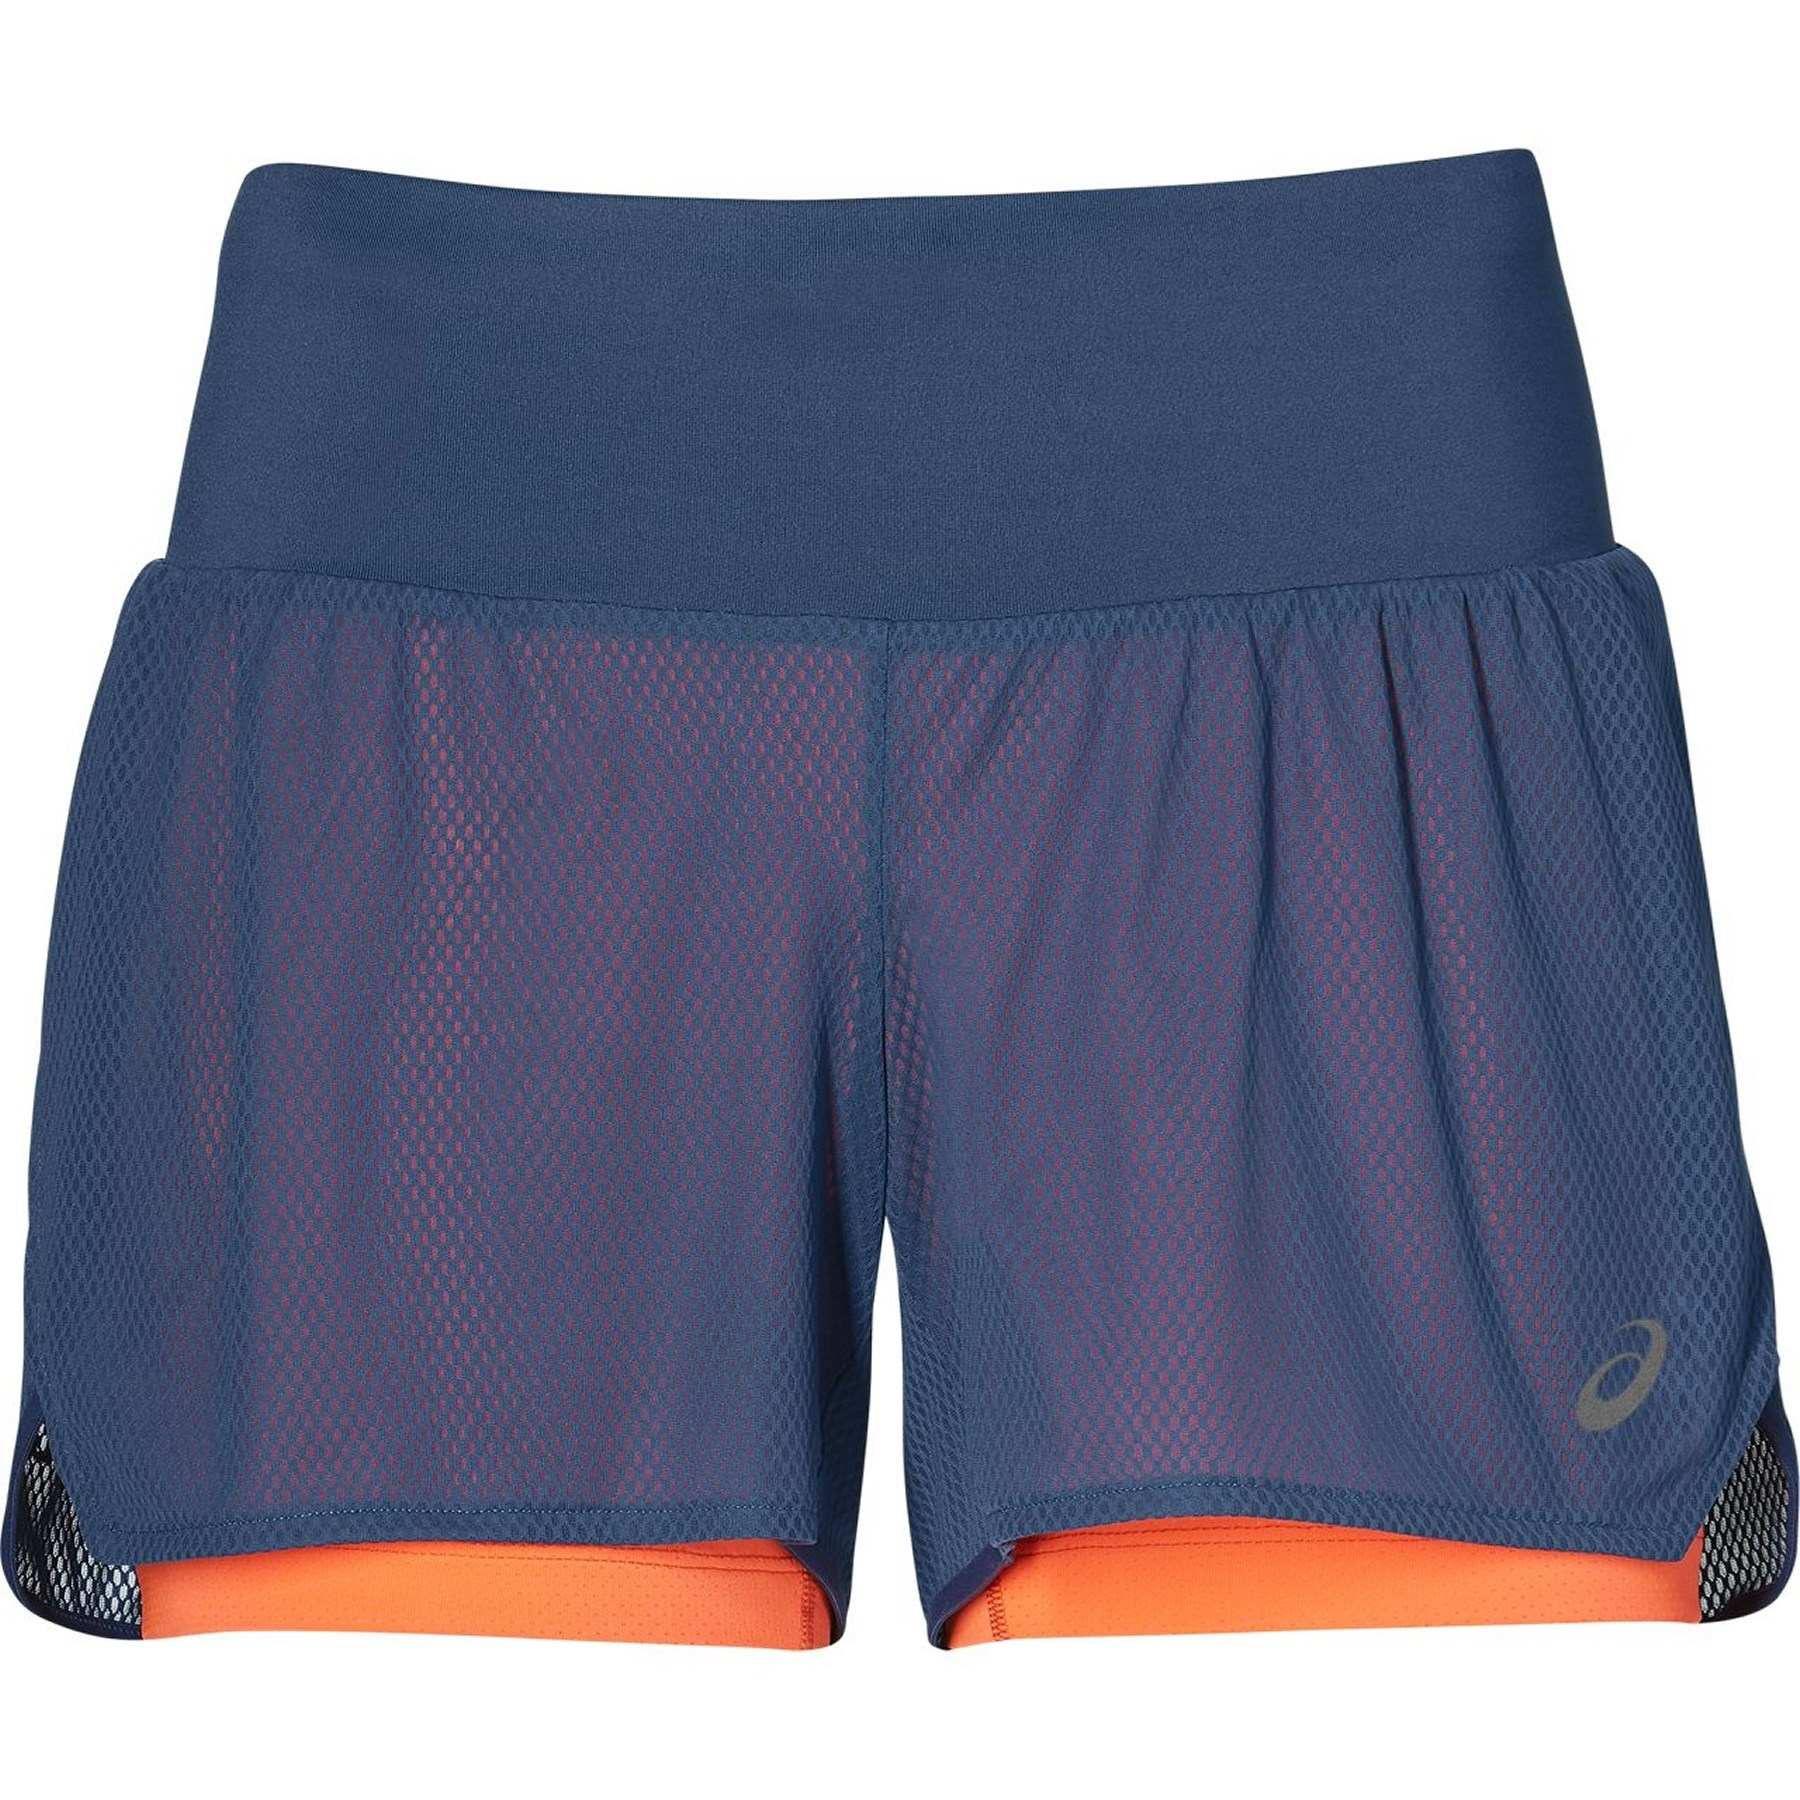 bac60ba4da Asics Women's Cool 2 in 1 Short